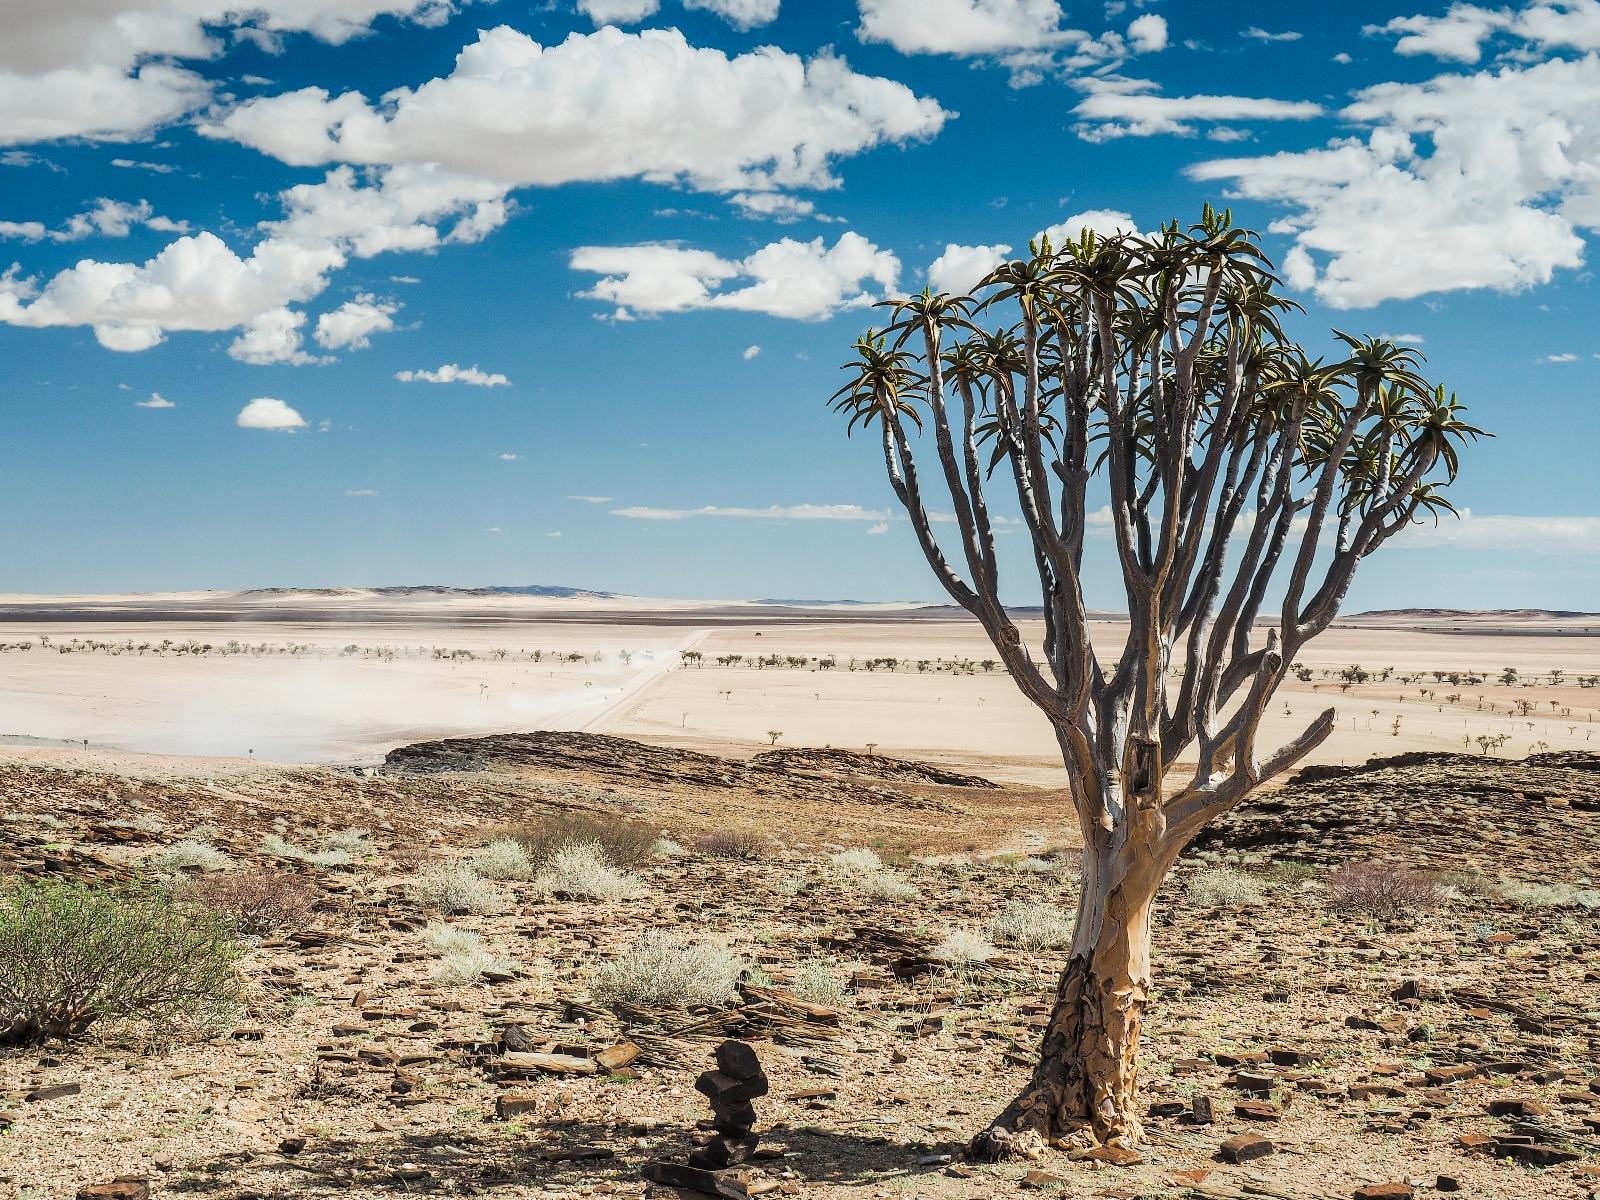 Quiver tree in Namibian landscape